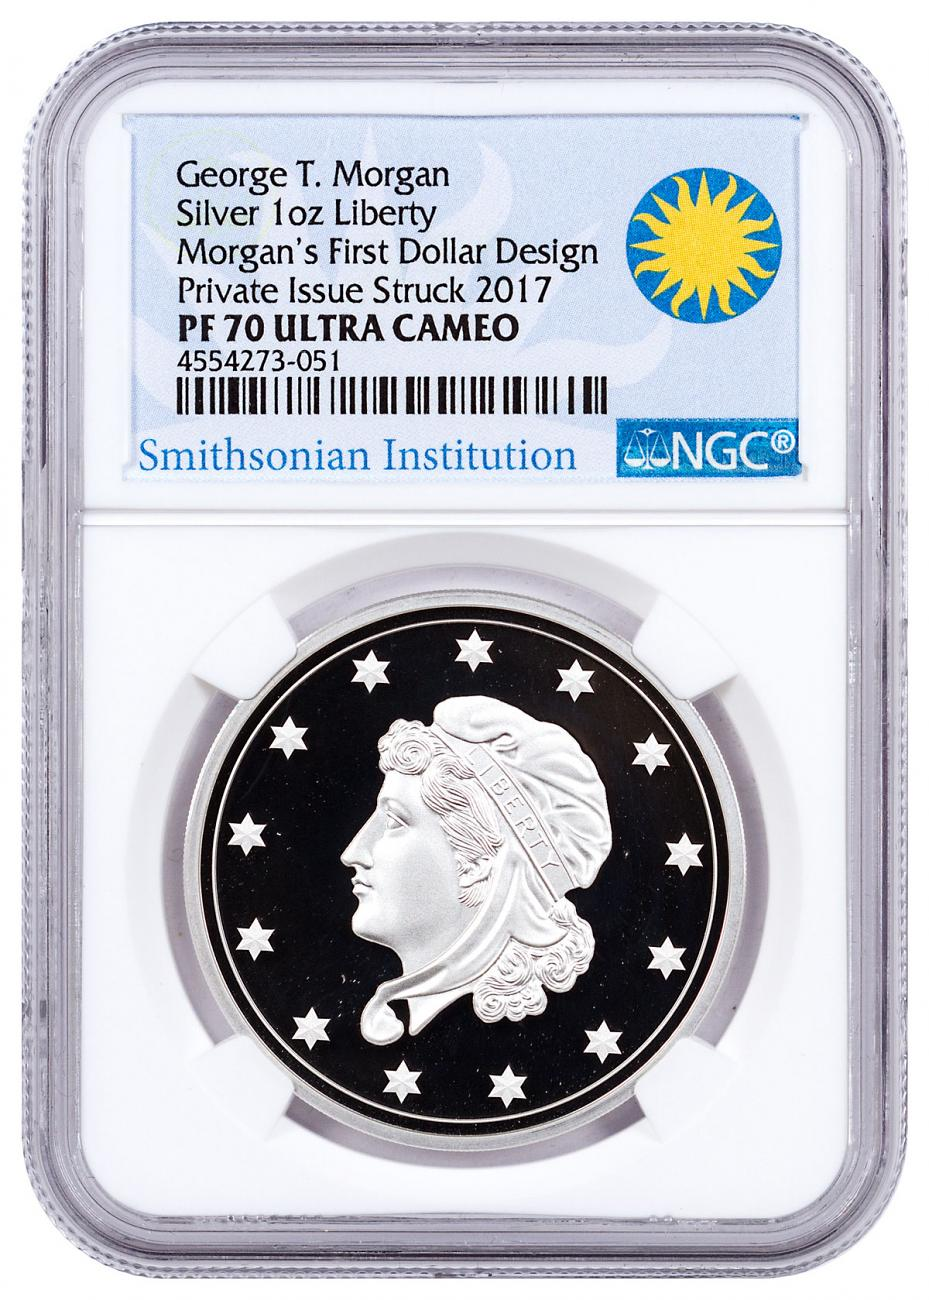 (2017) Smithsonian - Morgan's First Silver Dollar 1 oz. Silver Proof NGC PF70 UC (Smithsonian Institution Label)